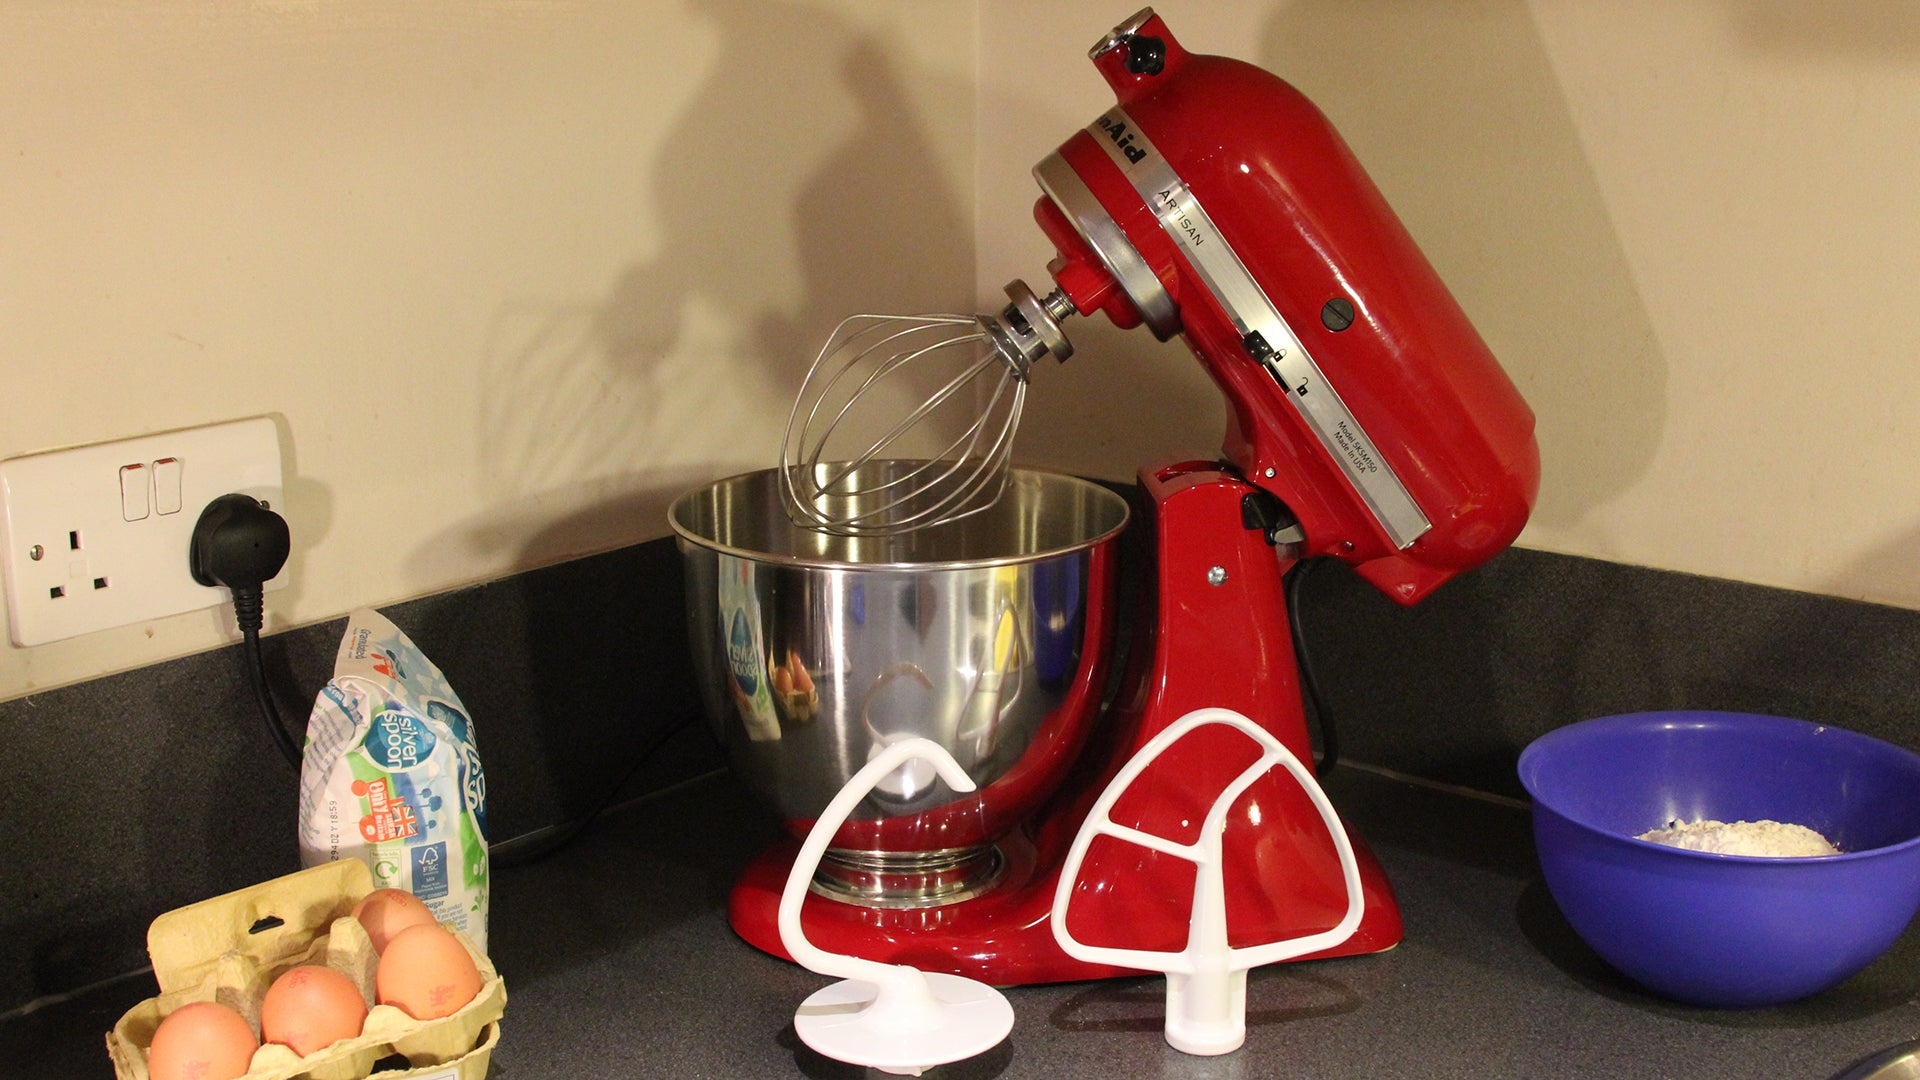 KitchenAid Artisan 4.8L Stand Mixer Review | Trusted Reviews